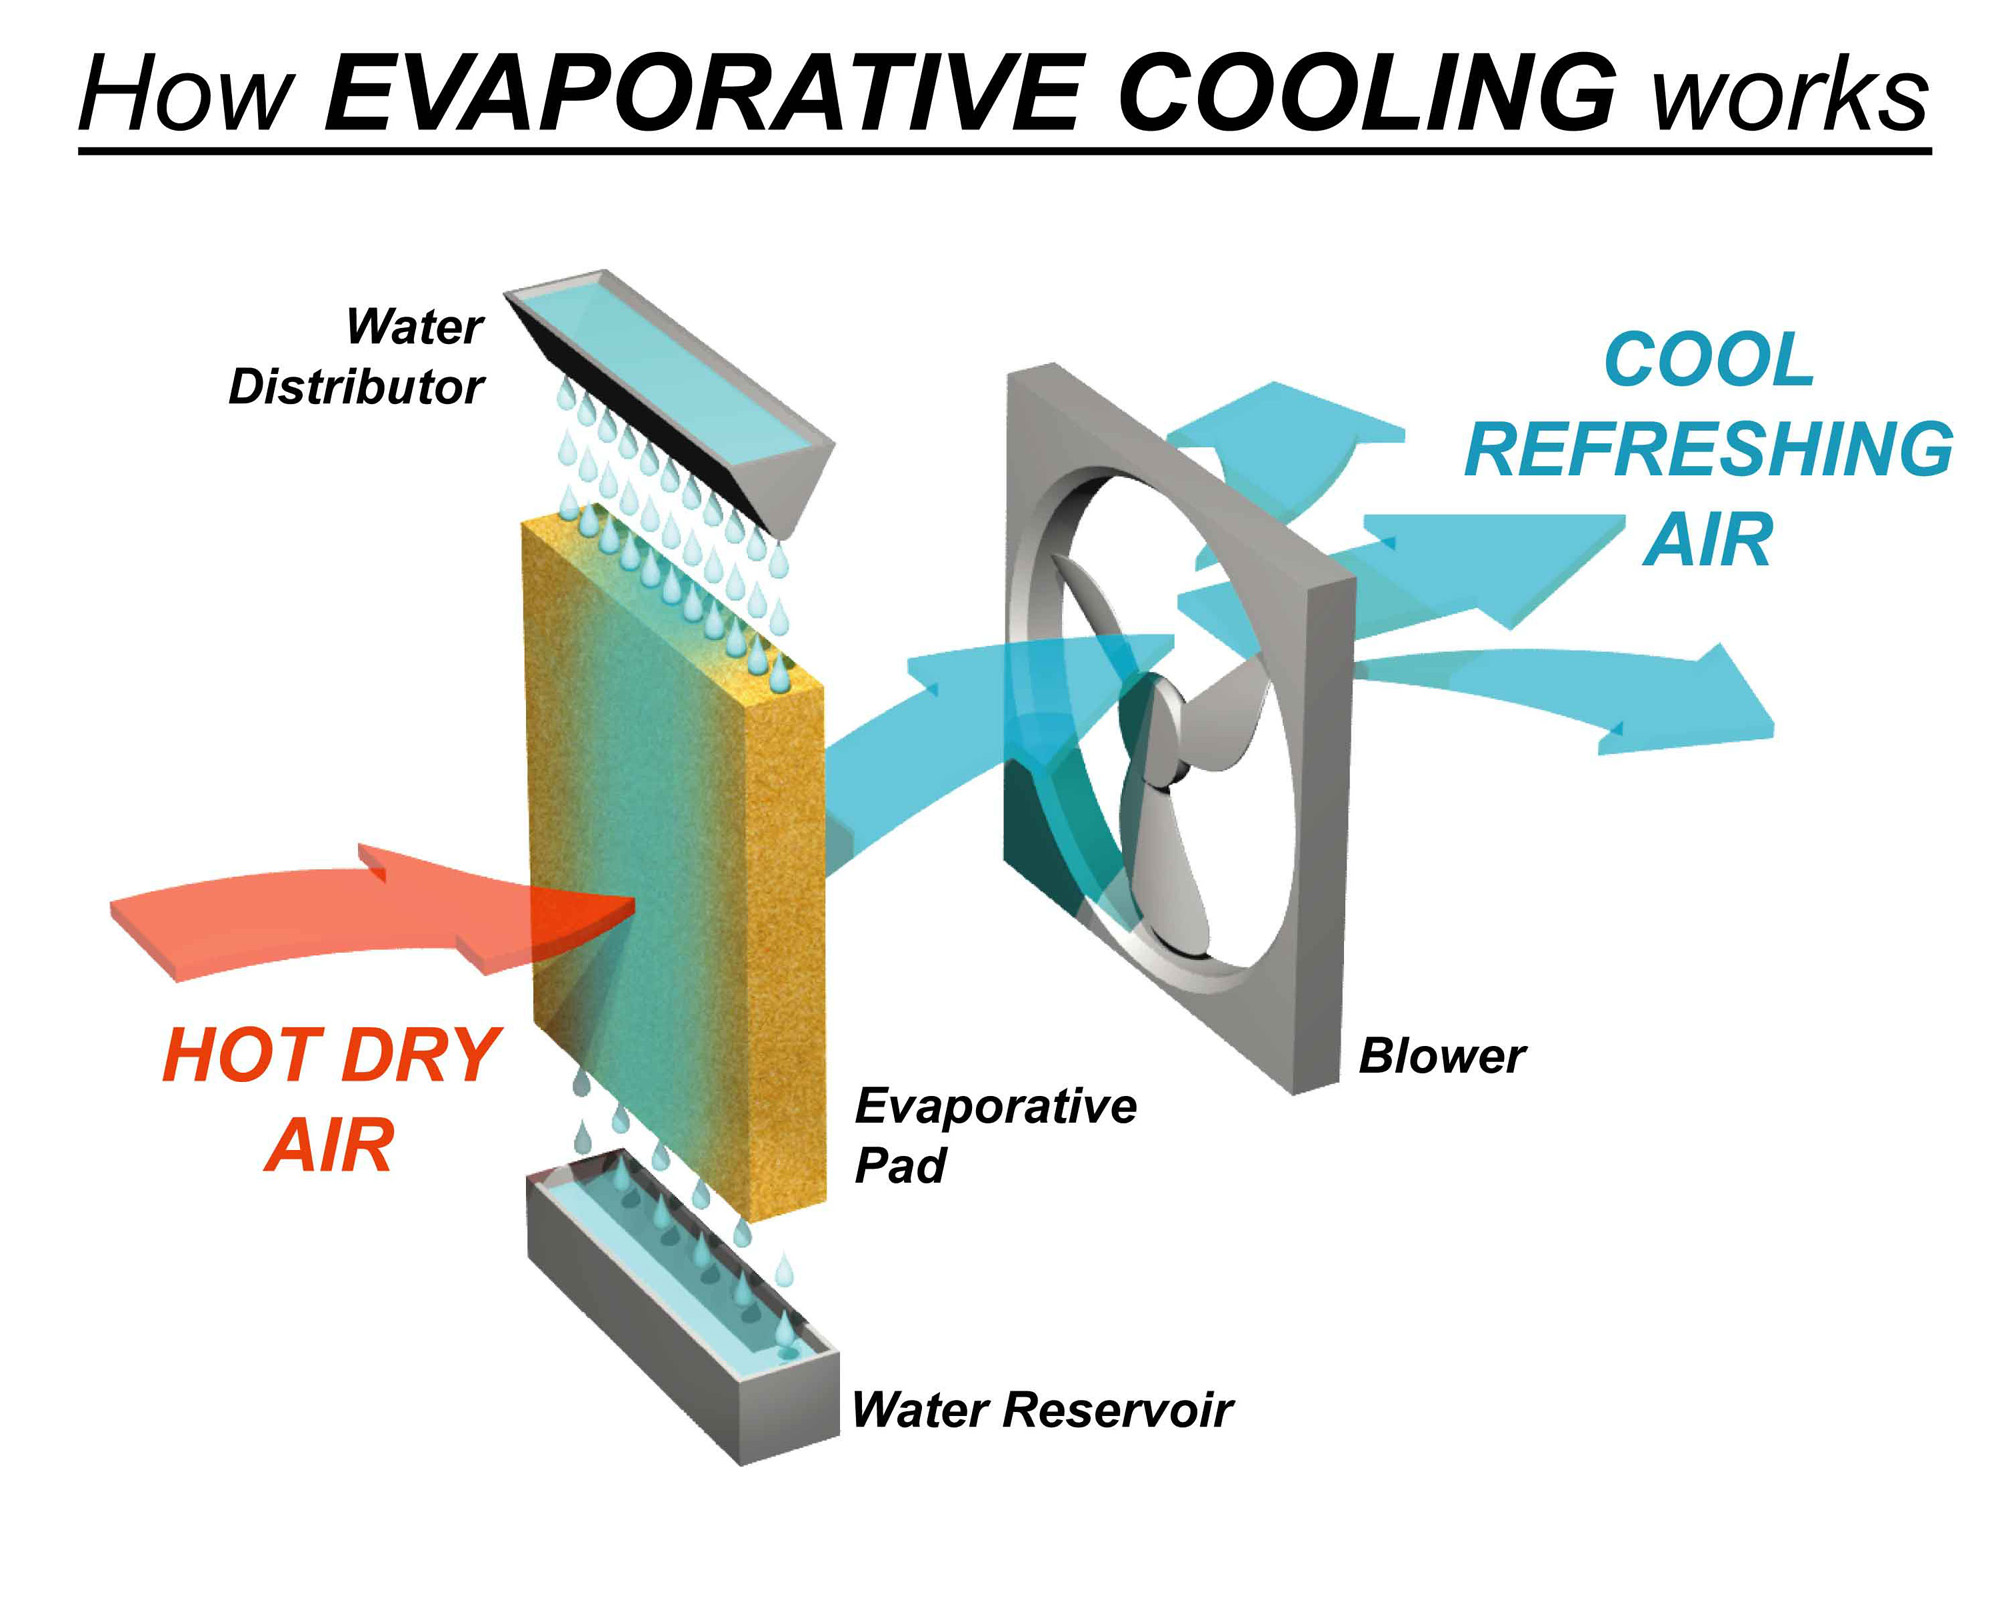 Split System vs Evaporative Cooling – What is the difference